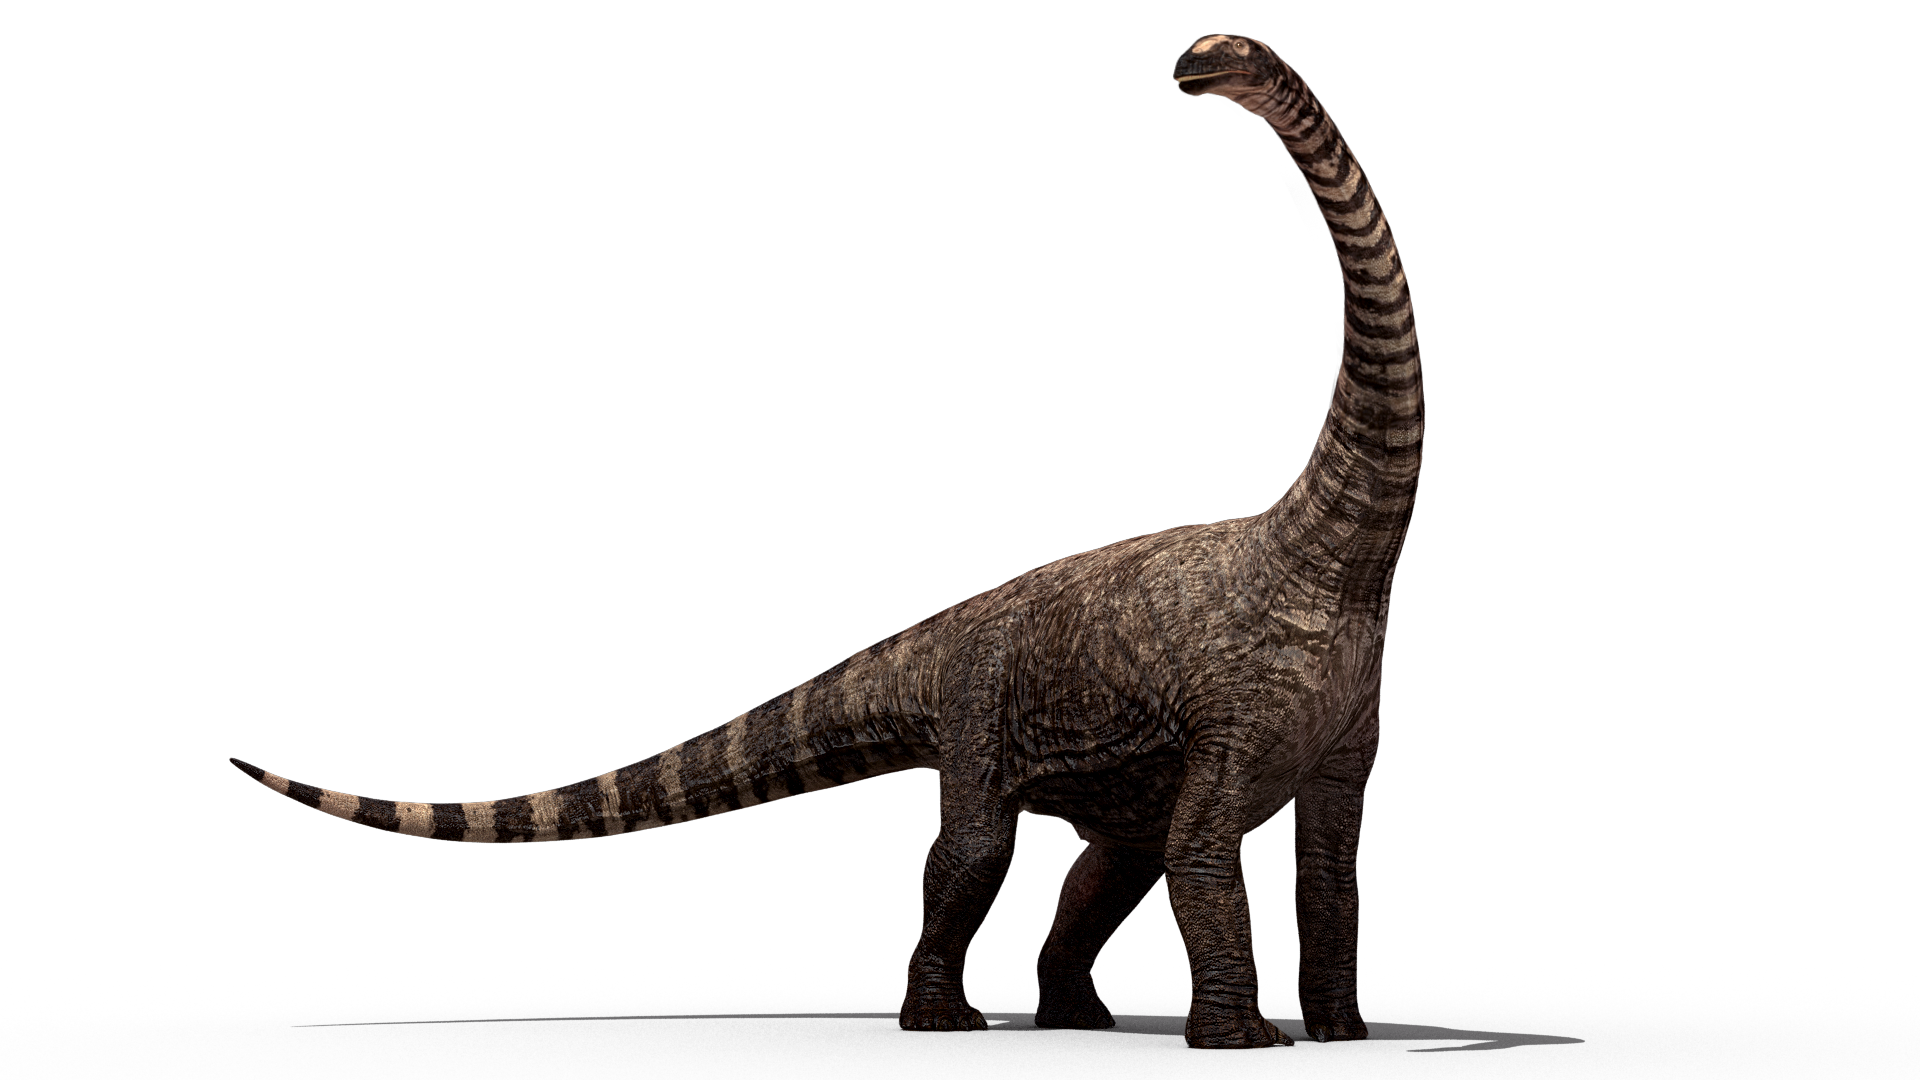 Download this high resolution Dinosaur Transparent PNG Image